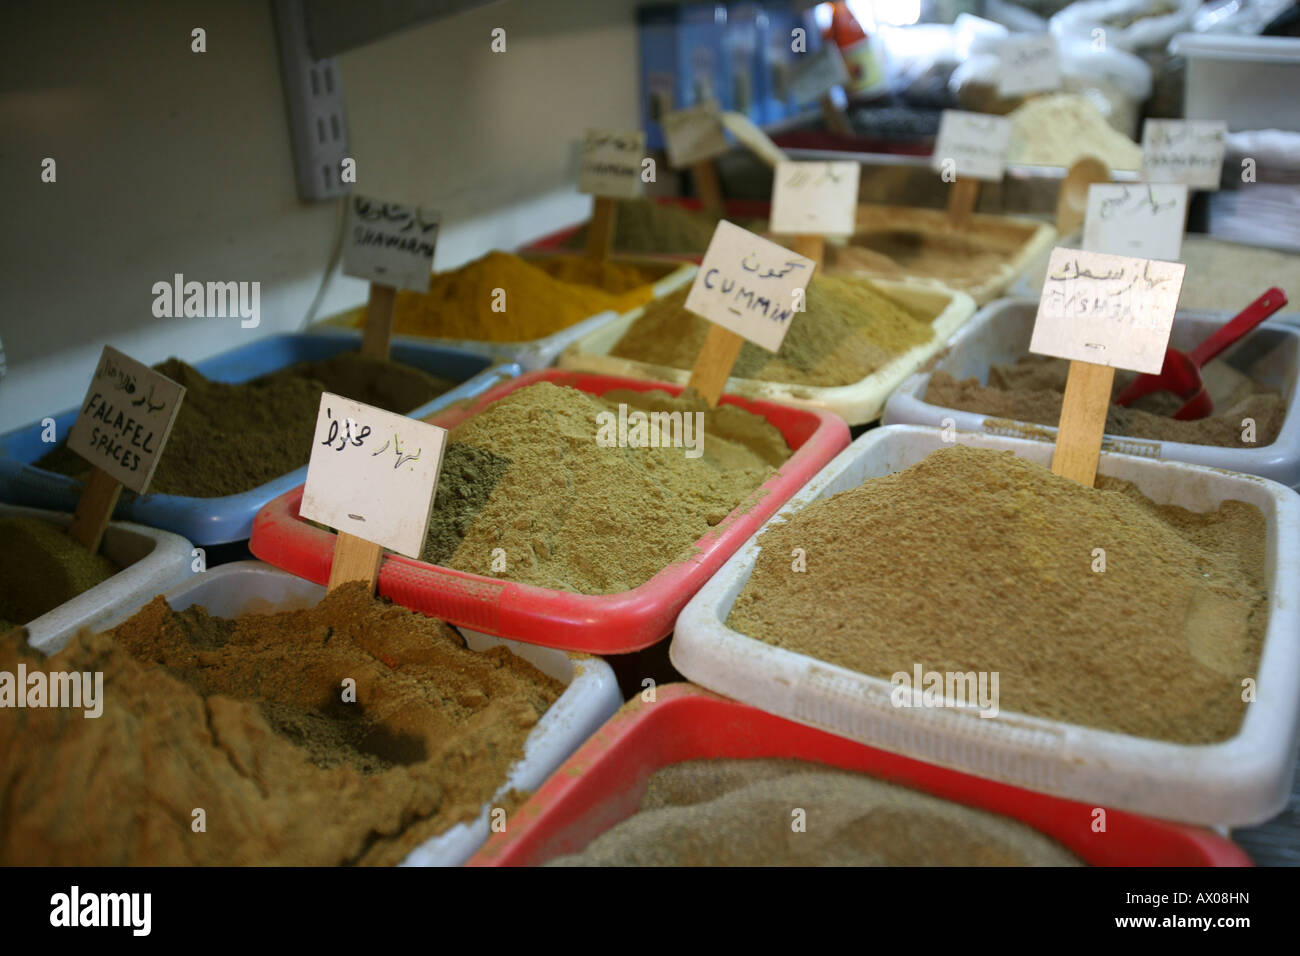 Spices and food for sale at a market in the old city section of Jerusalem - Stock Image